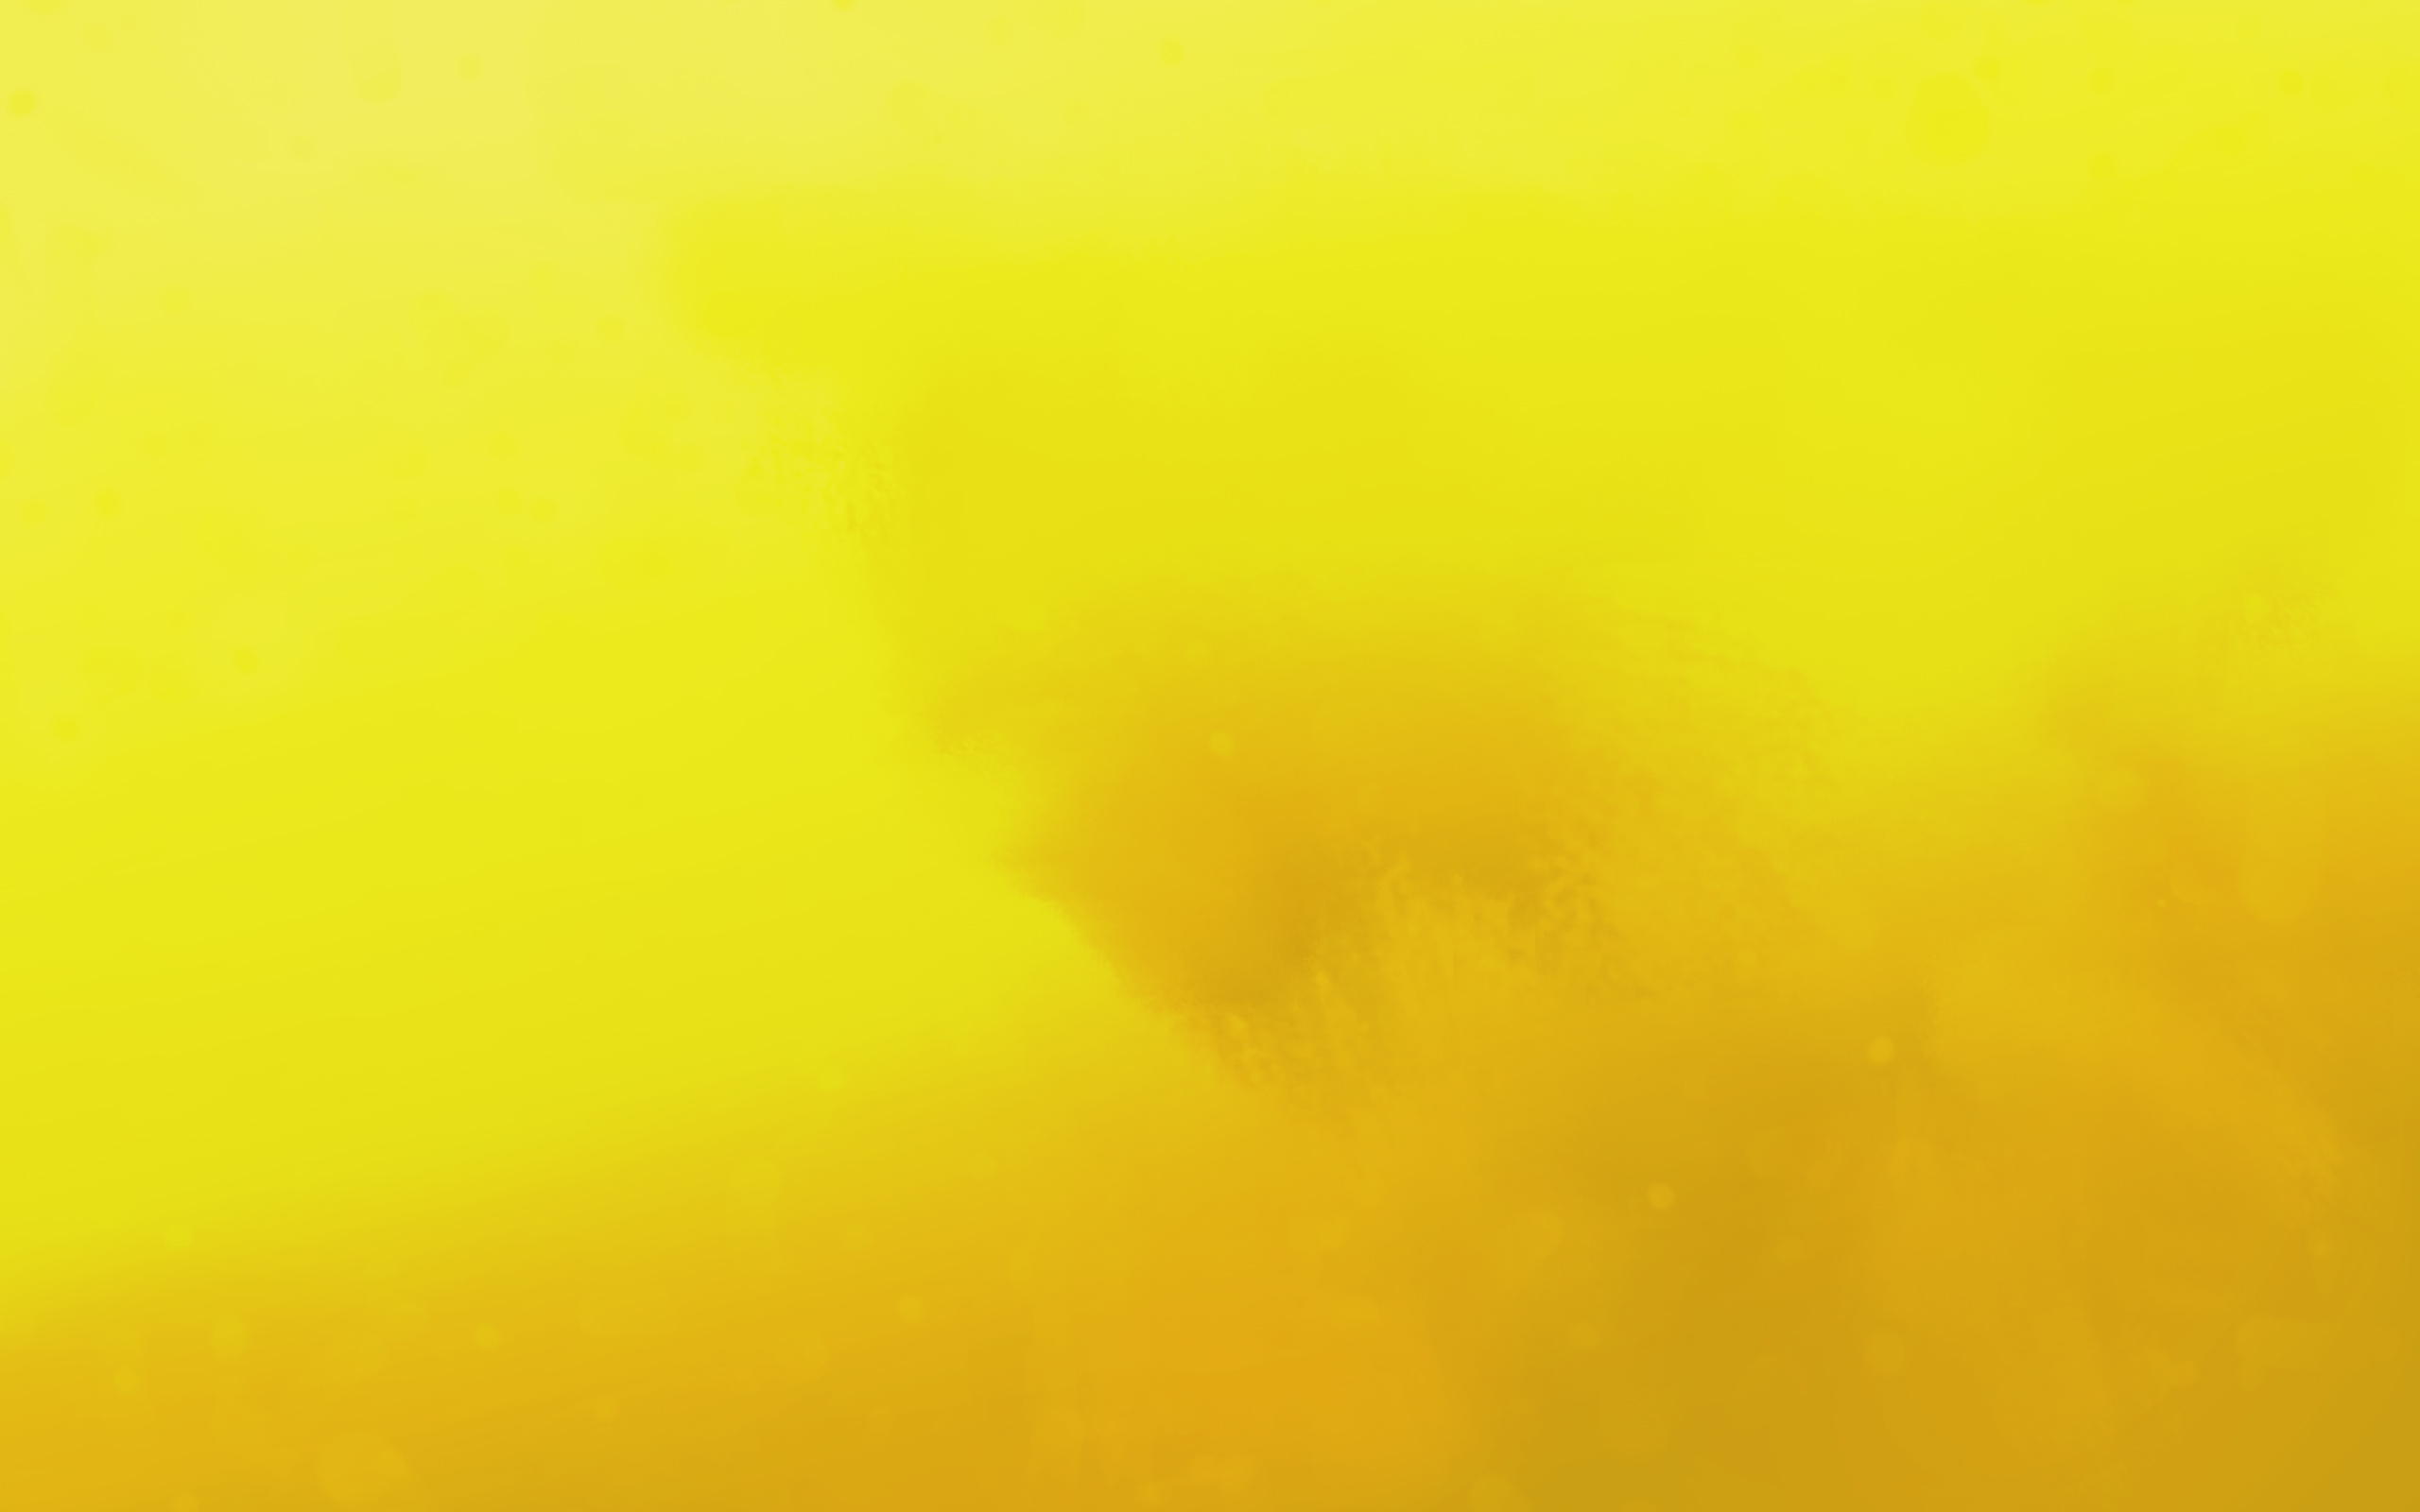 Yellow Wallpaper for Desktop